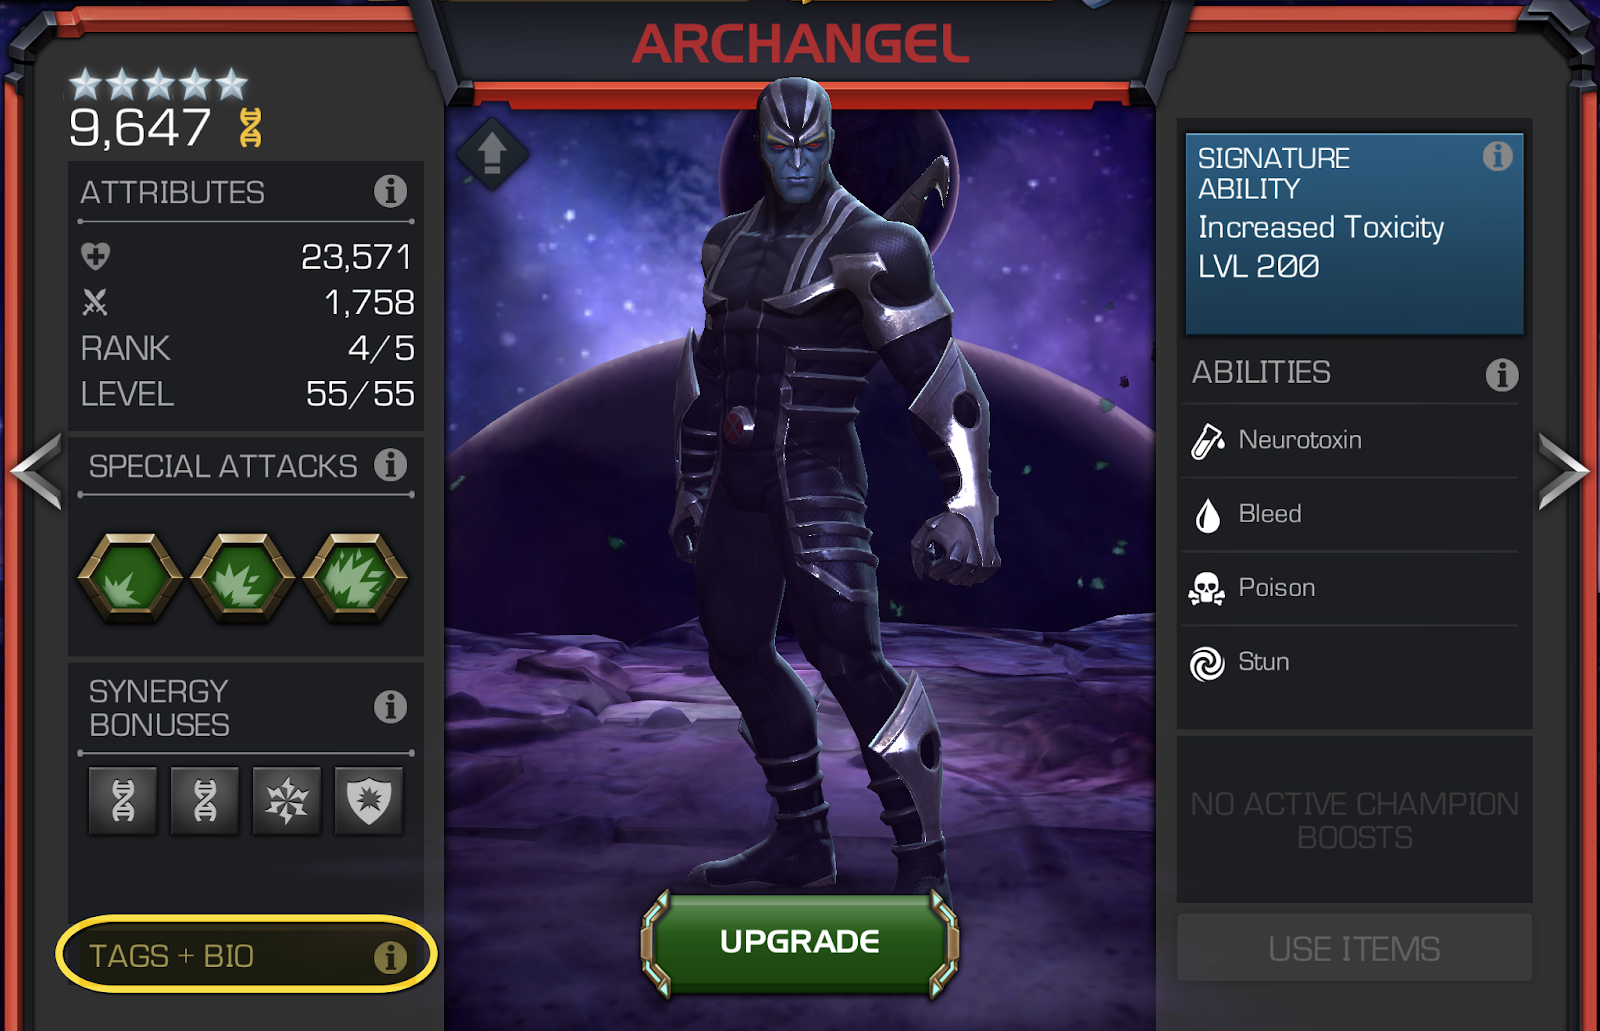 A screenshot of the Champion info page, featuring Archangel.